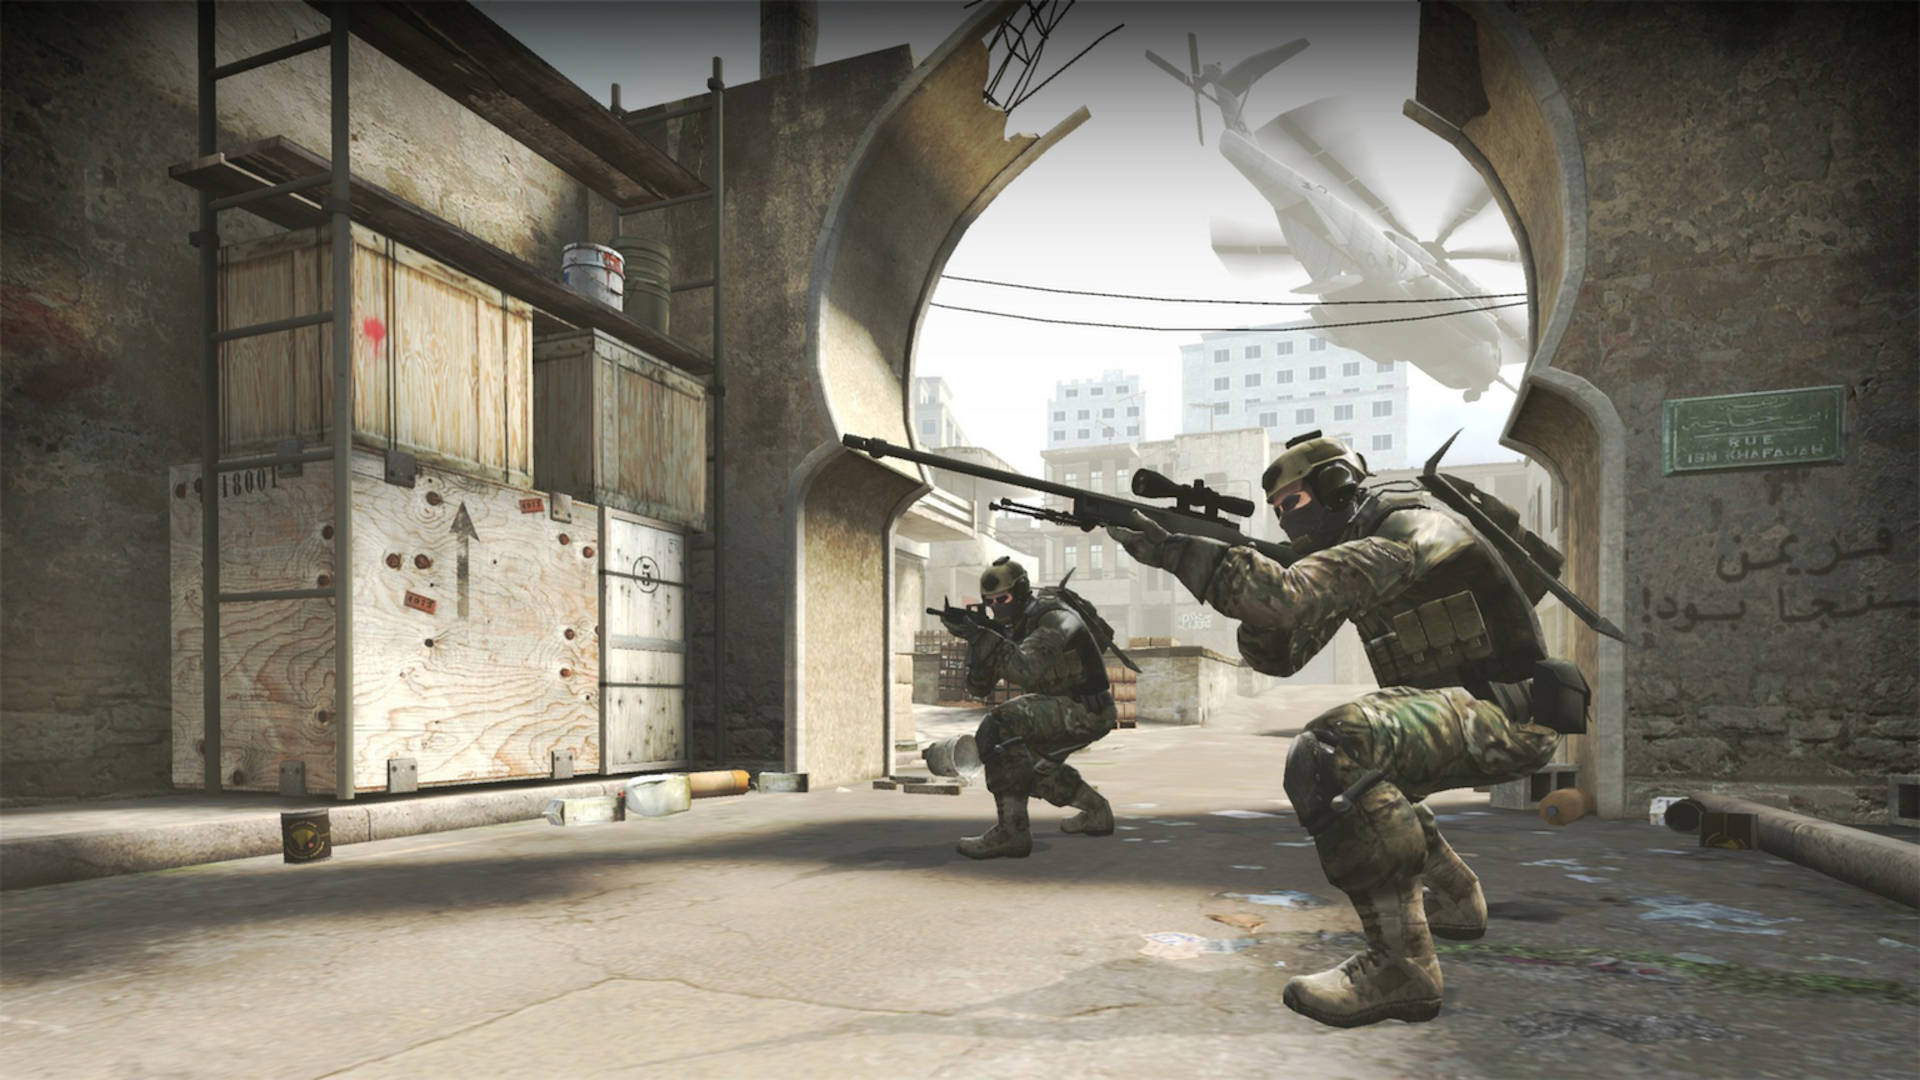 Professional Csgo Players Banned From Using Custom